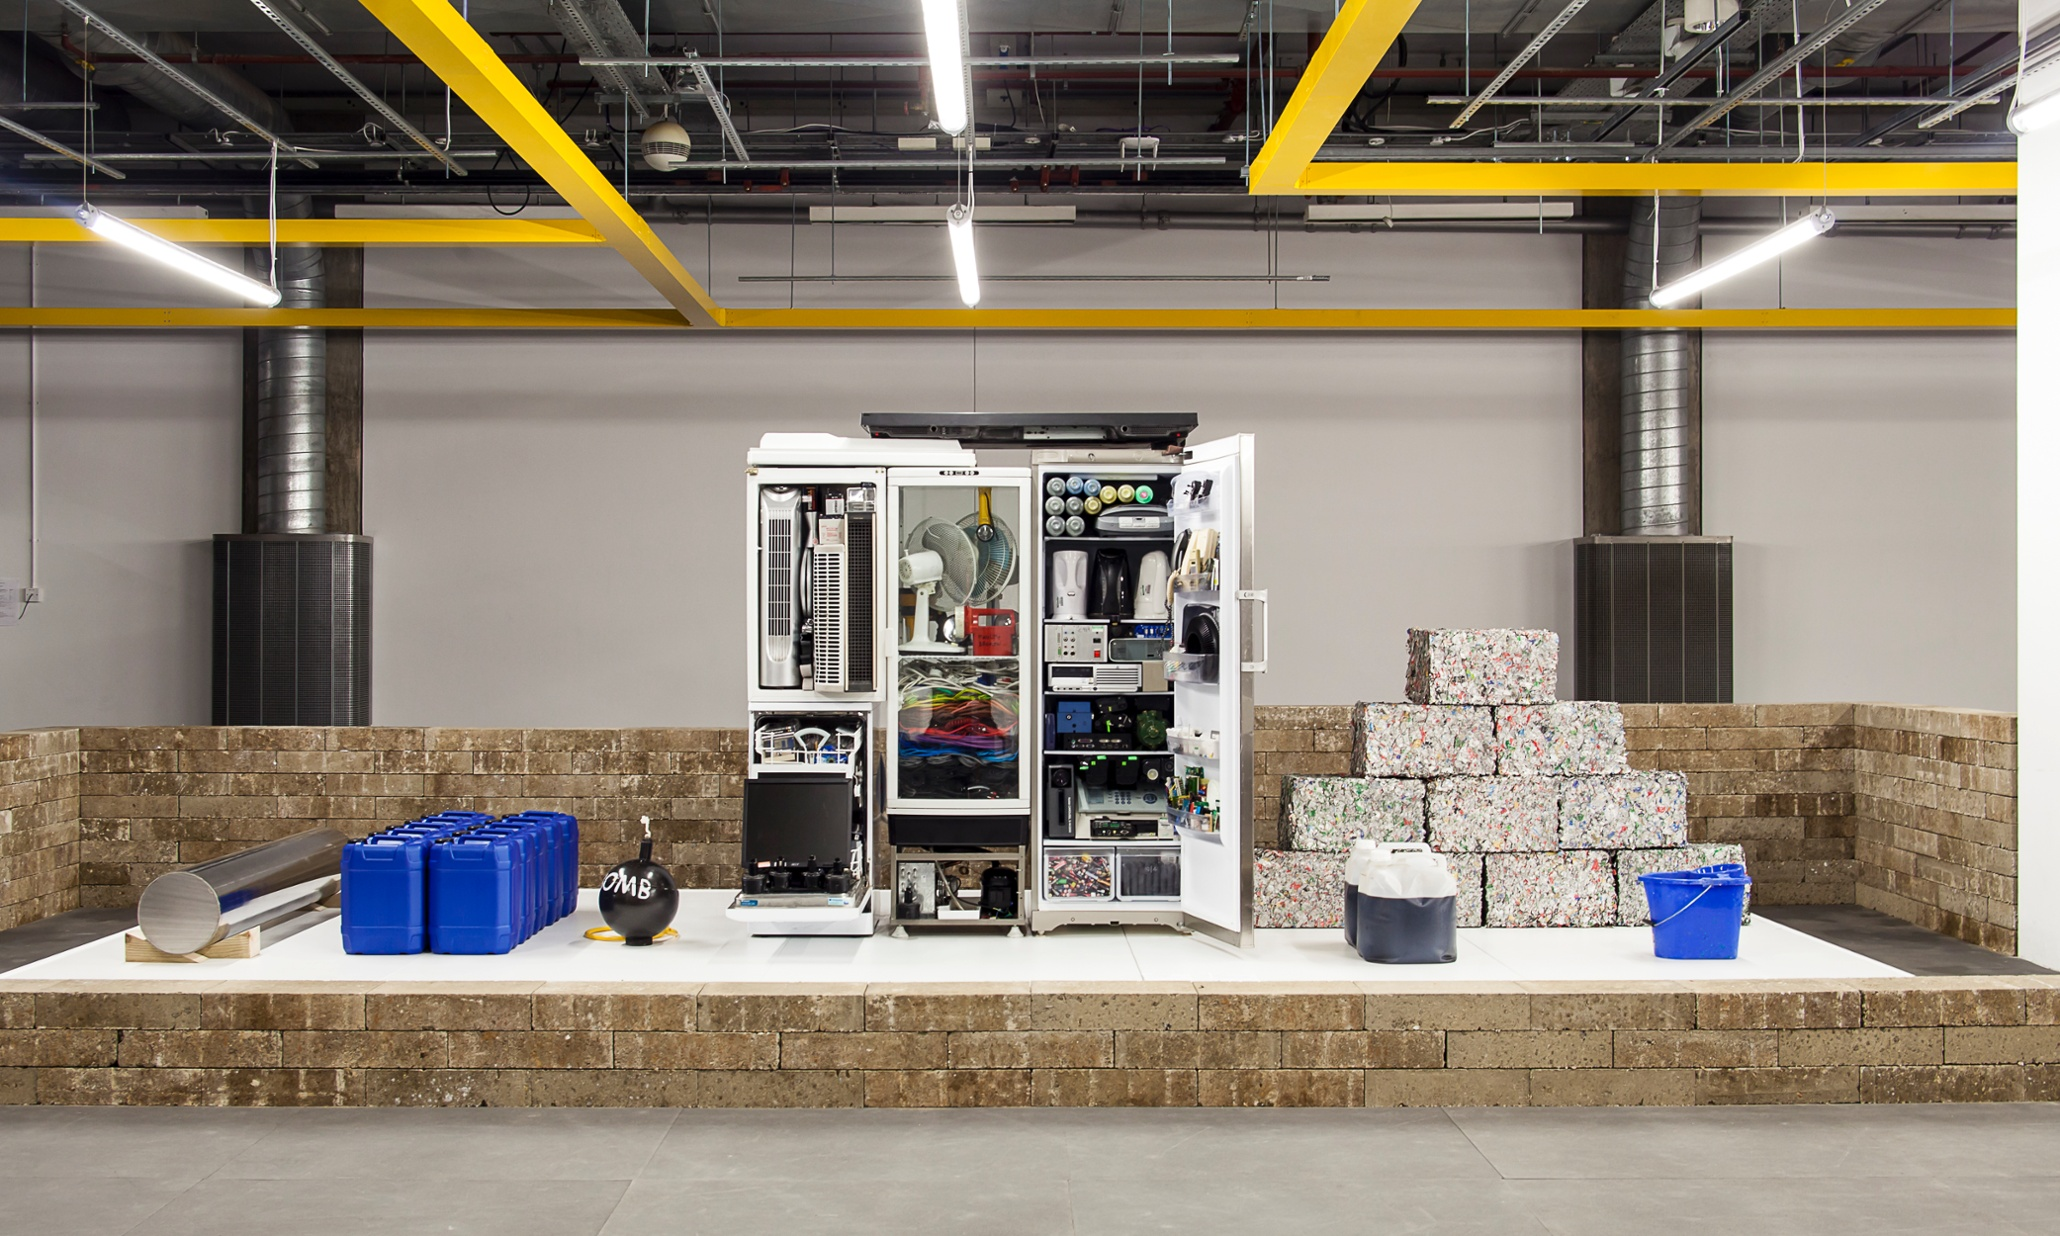 Waste not, want not: the Science Museum exhibits its ...